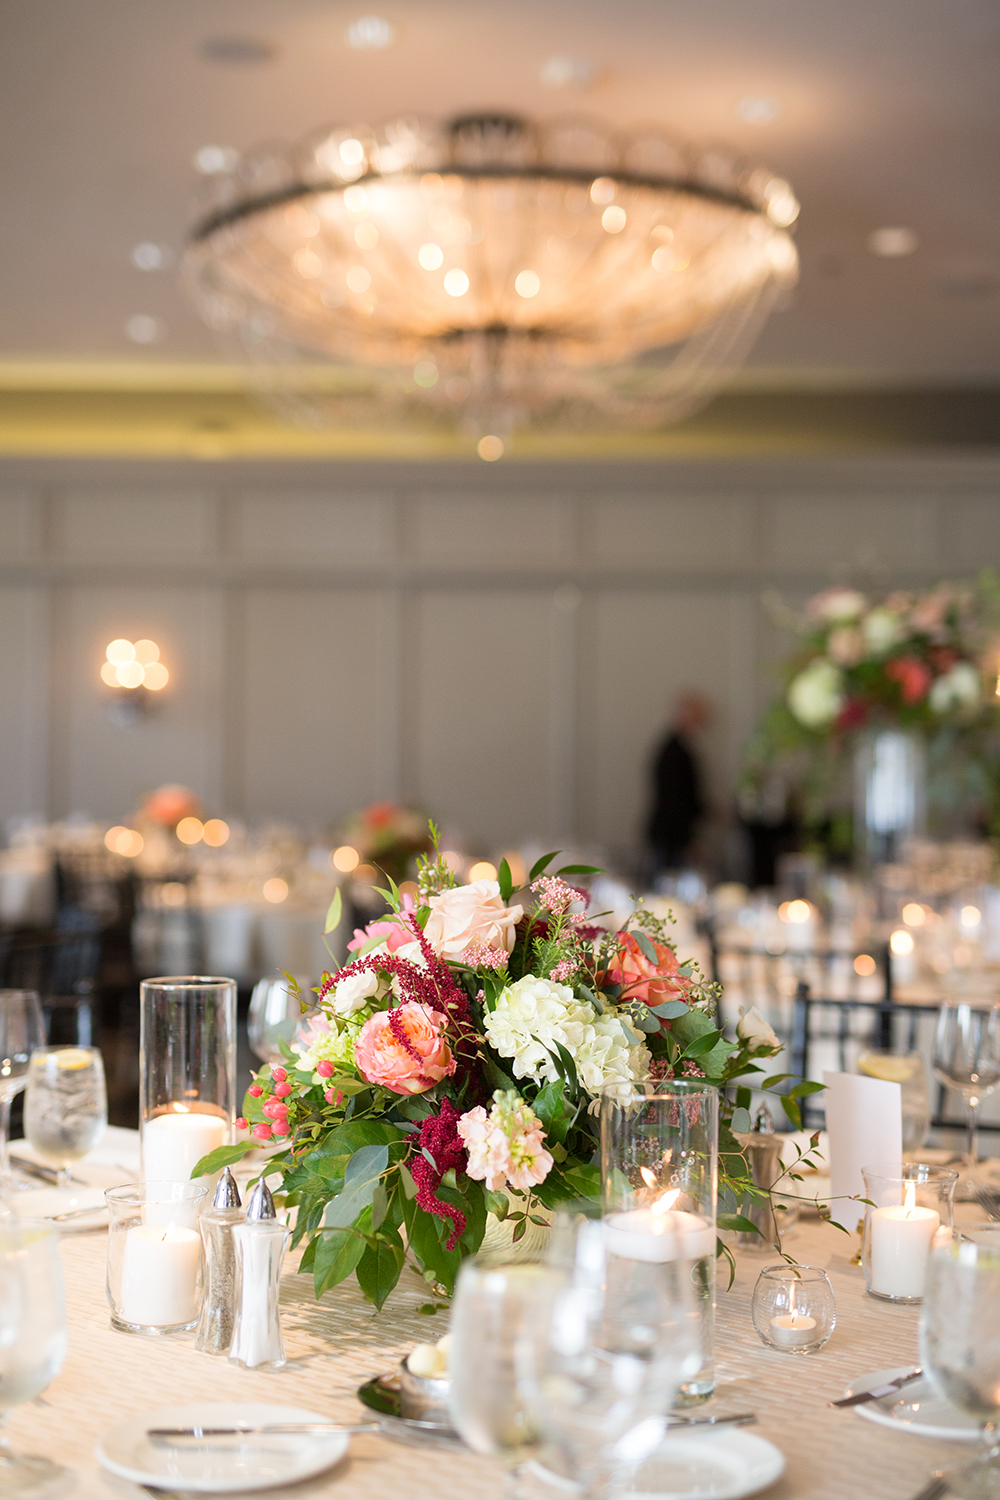 Neutrals, Pink, Coral, Burgundy reception centerpieces and decor - flowers